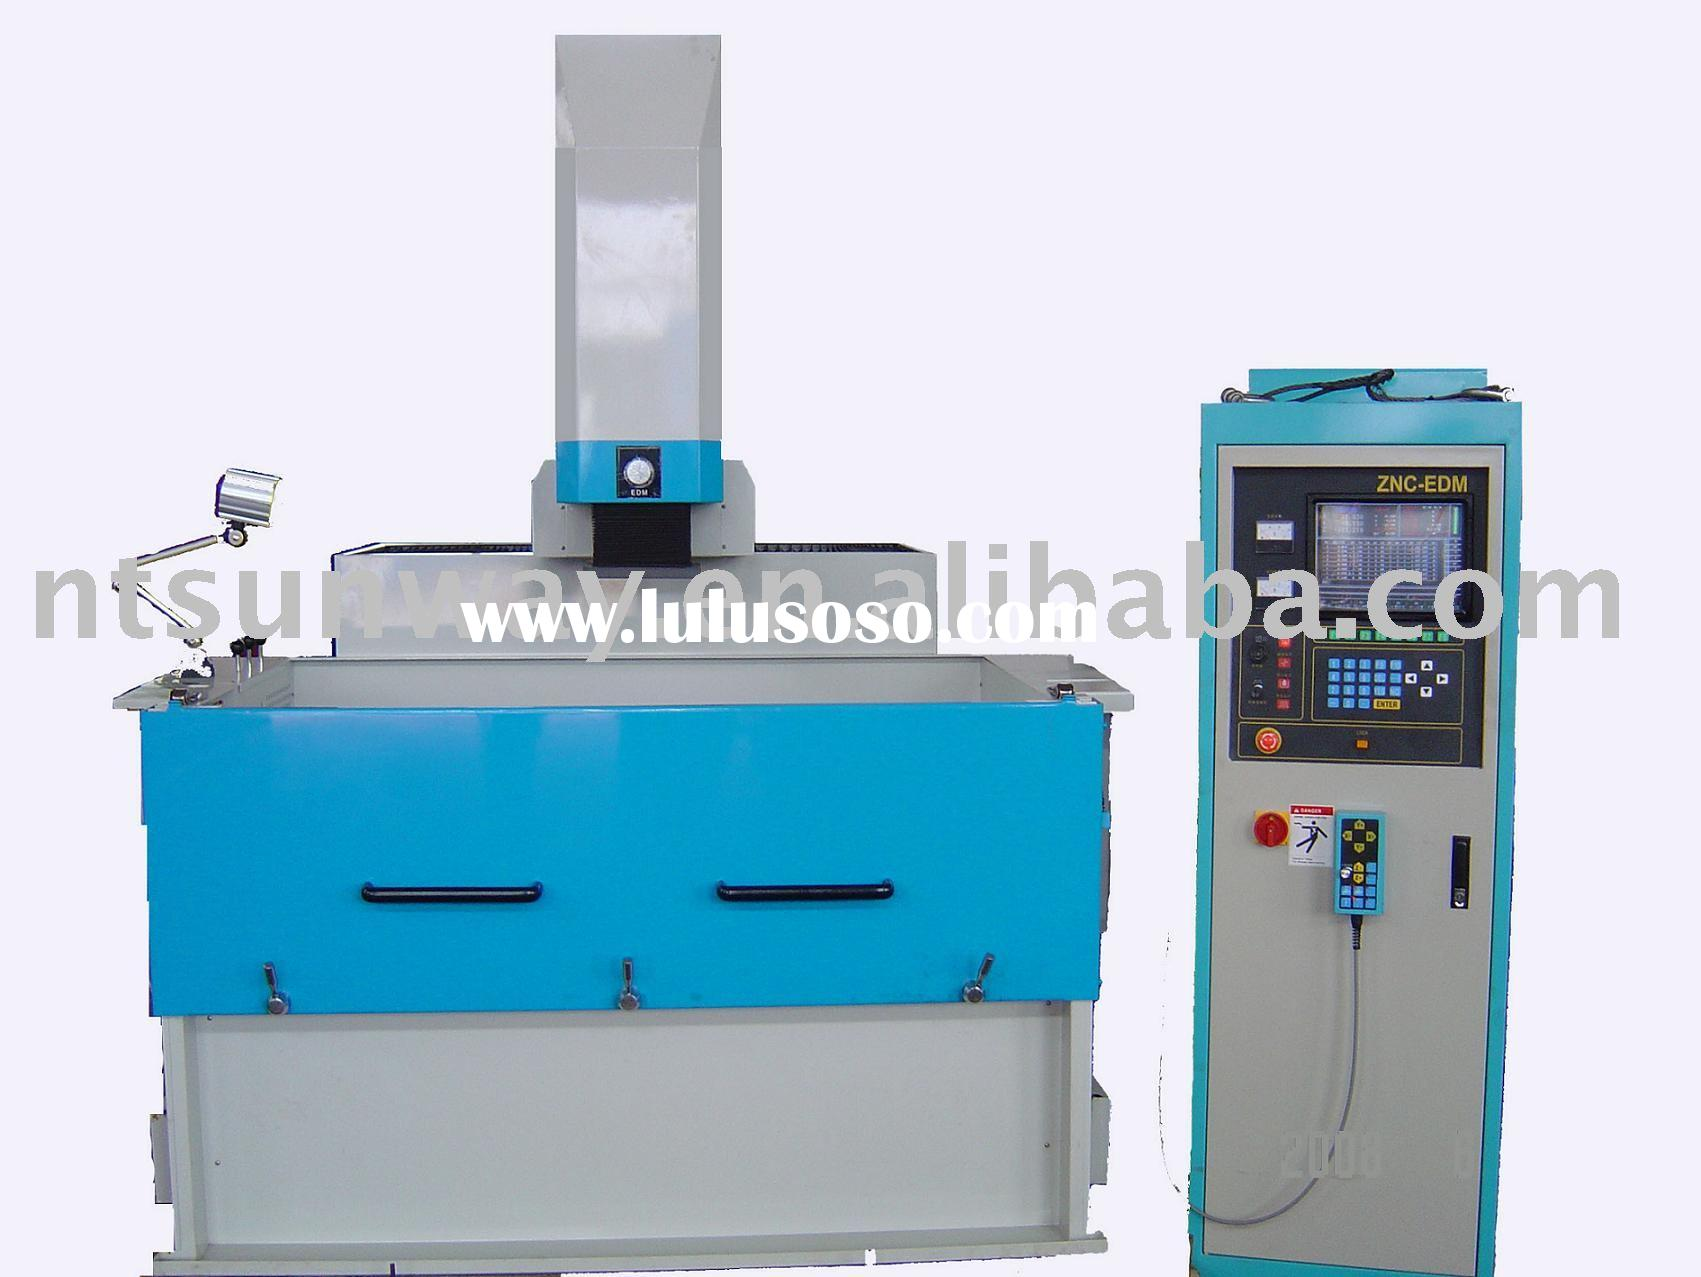 cnc edm machine, cnc edm machine Manufacturers in LuLuSoSo.com ...